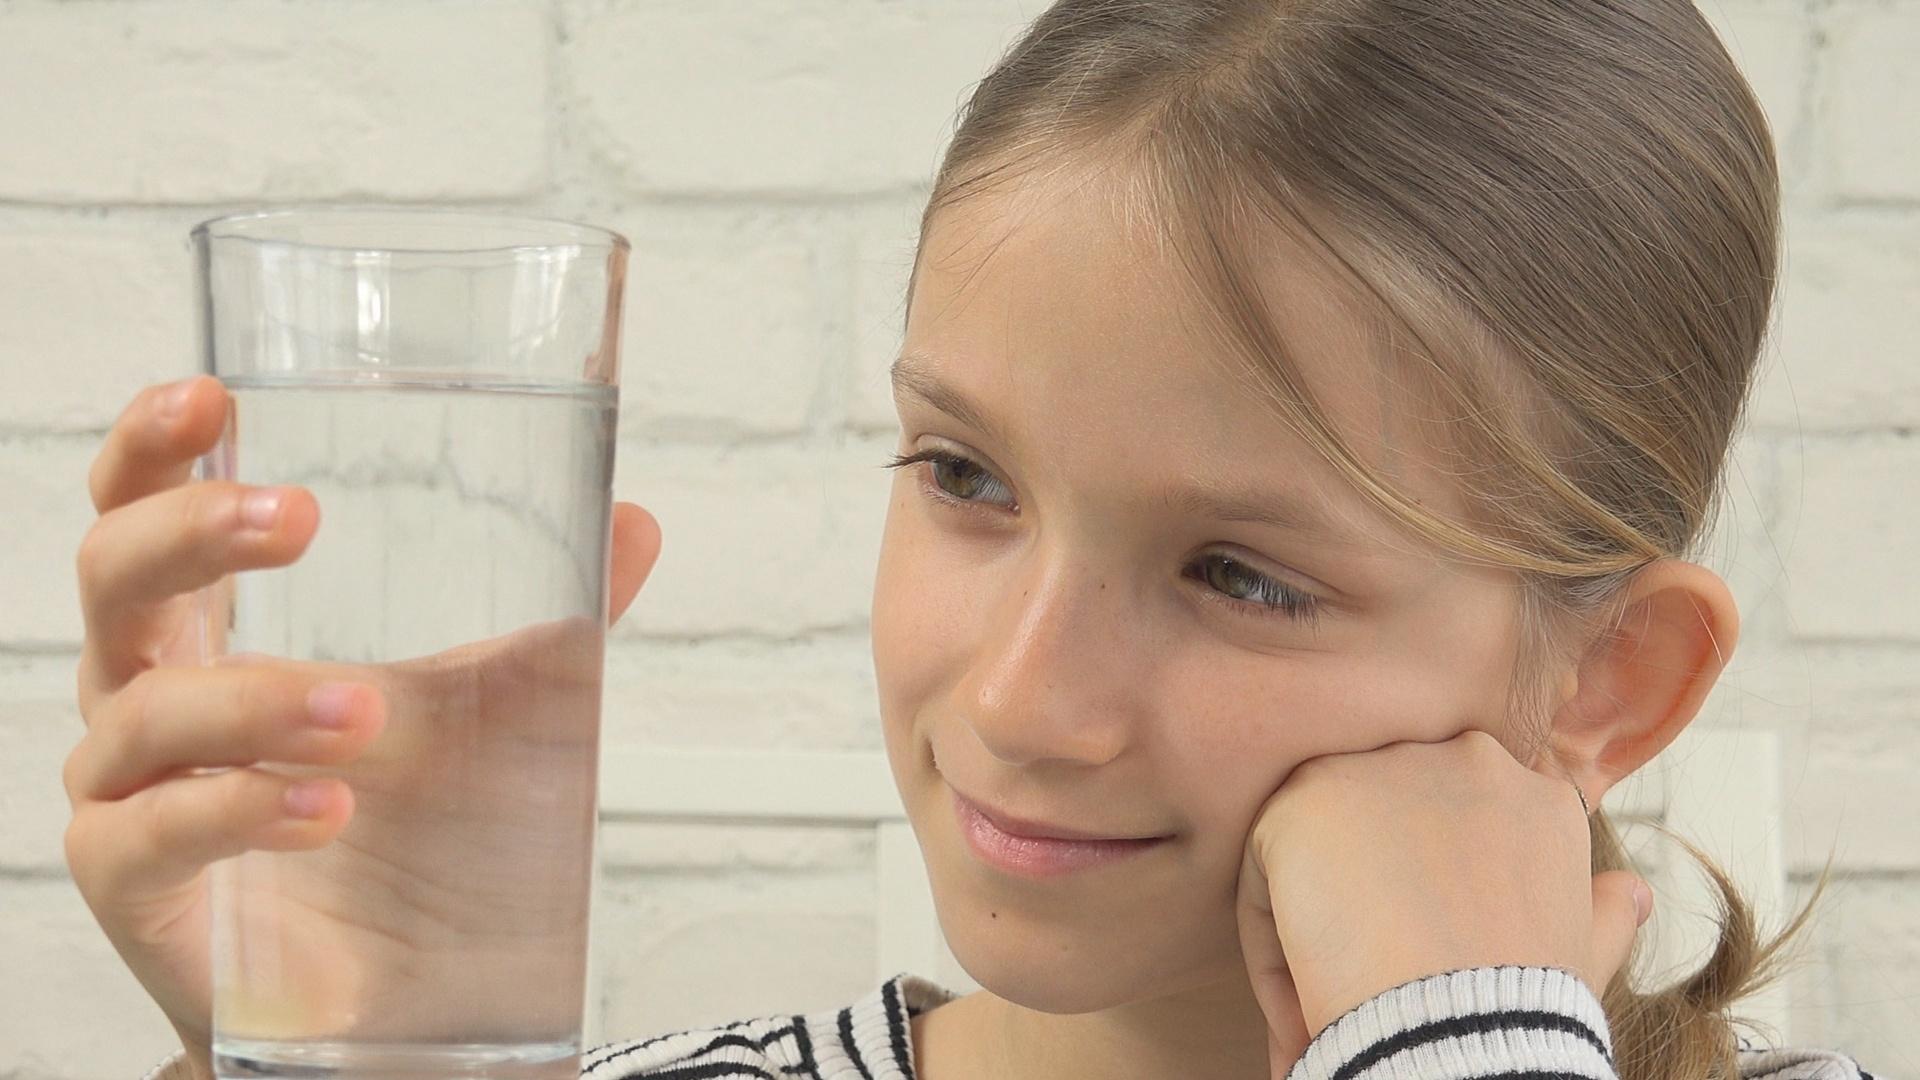 Child Drinking Water in Kitchen, Thirsty Girl Studying Glass of ...